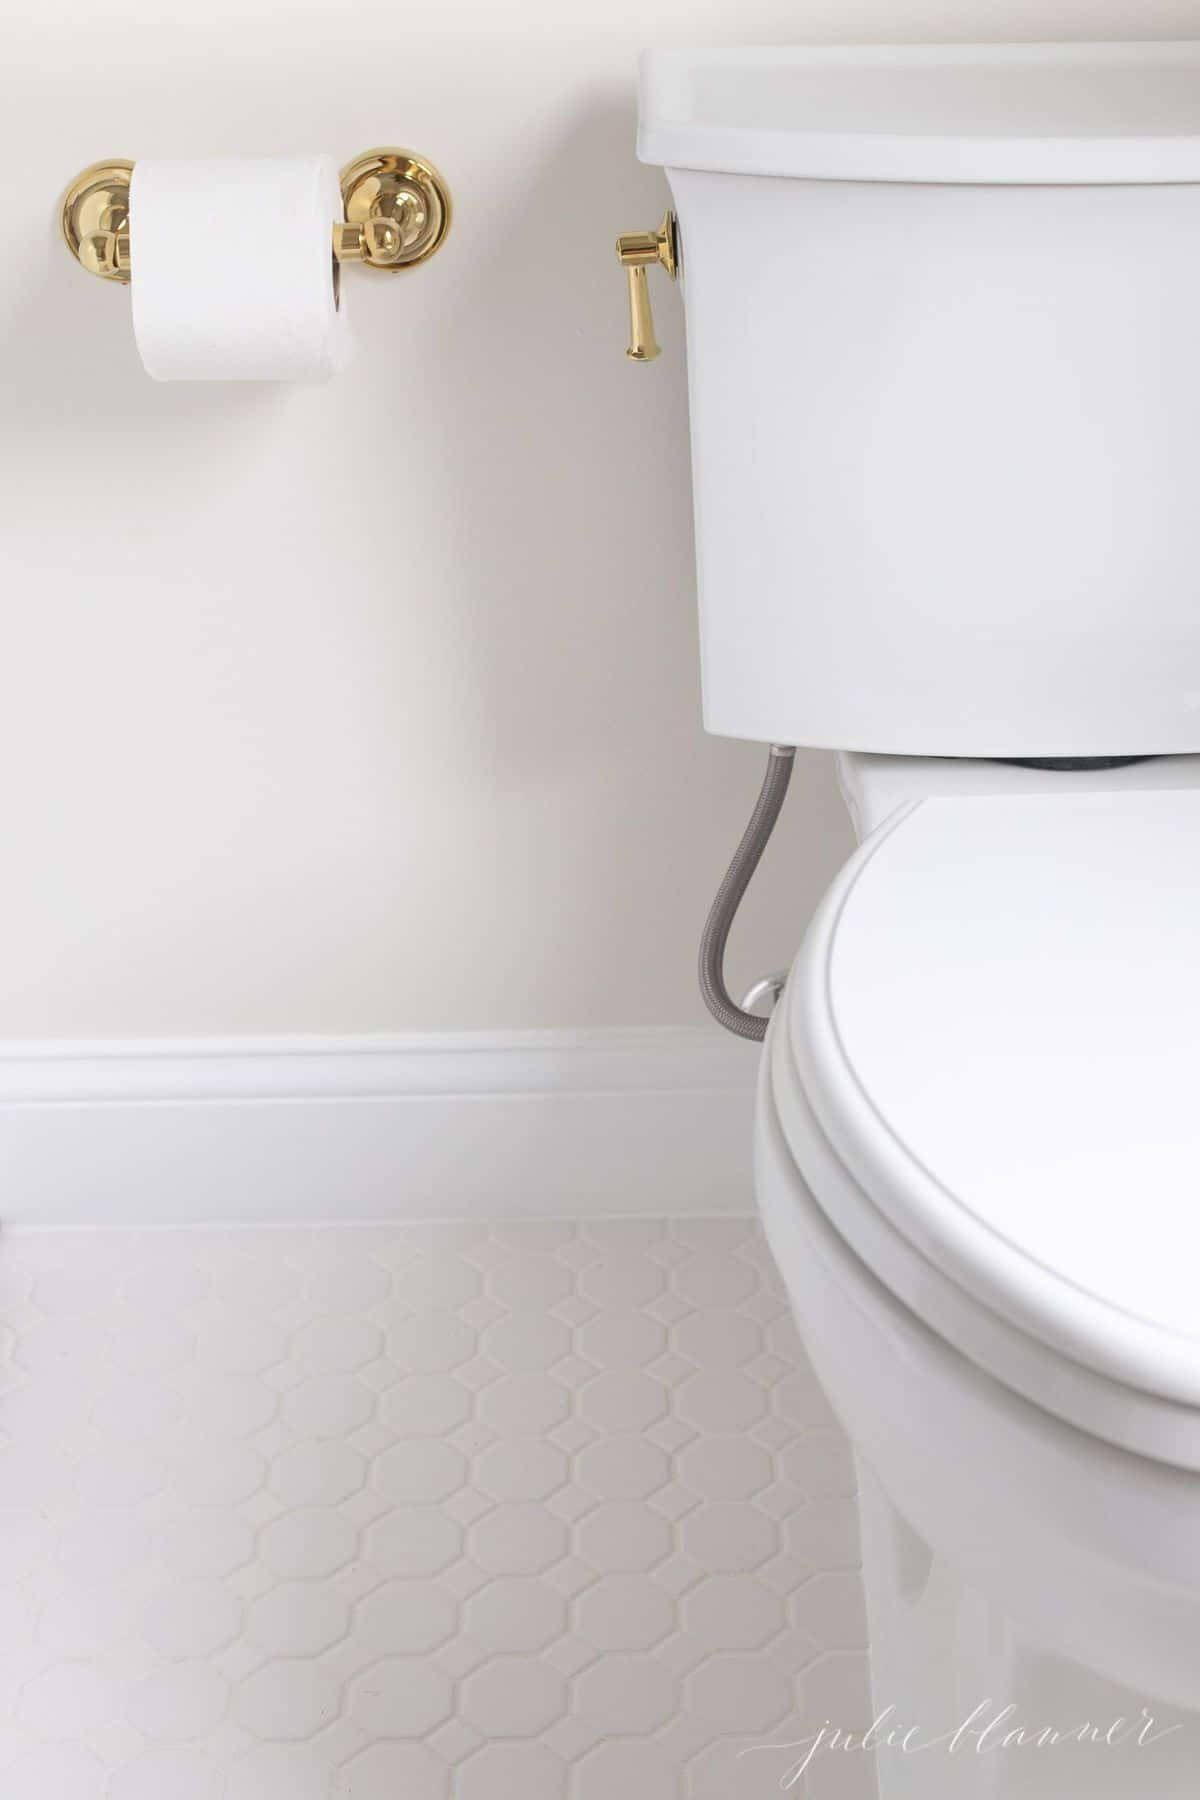 Close-up shot of white toilet, brass toilet paper holder and white mosaic tile floor.